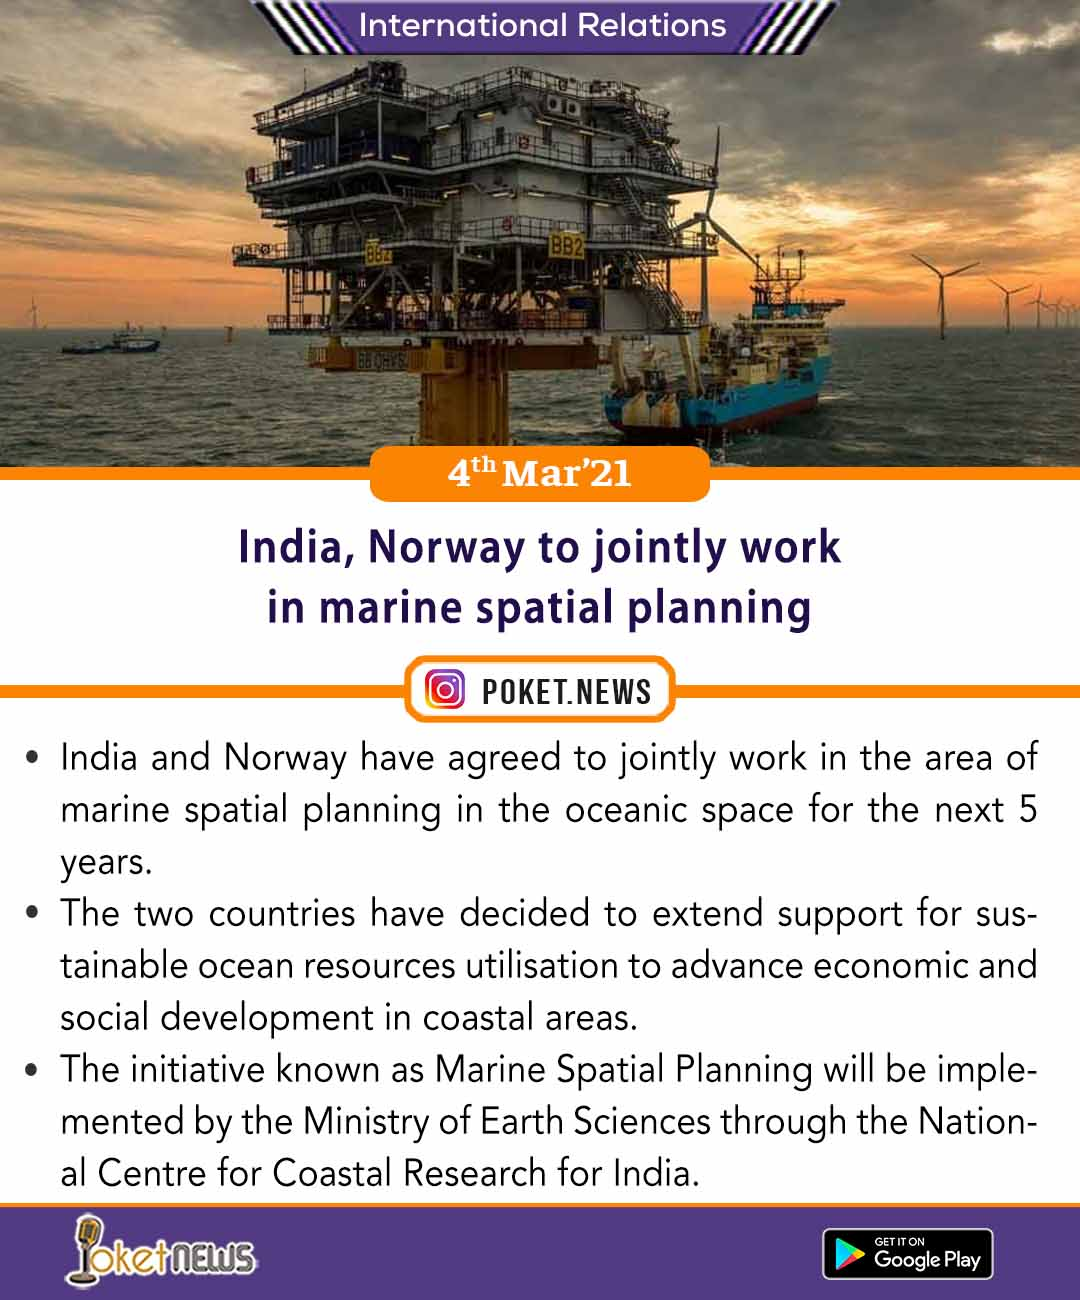 India, Norway to jointly work in marine spatial planning